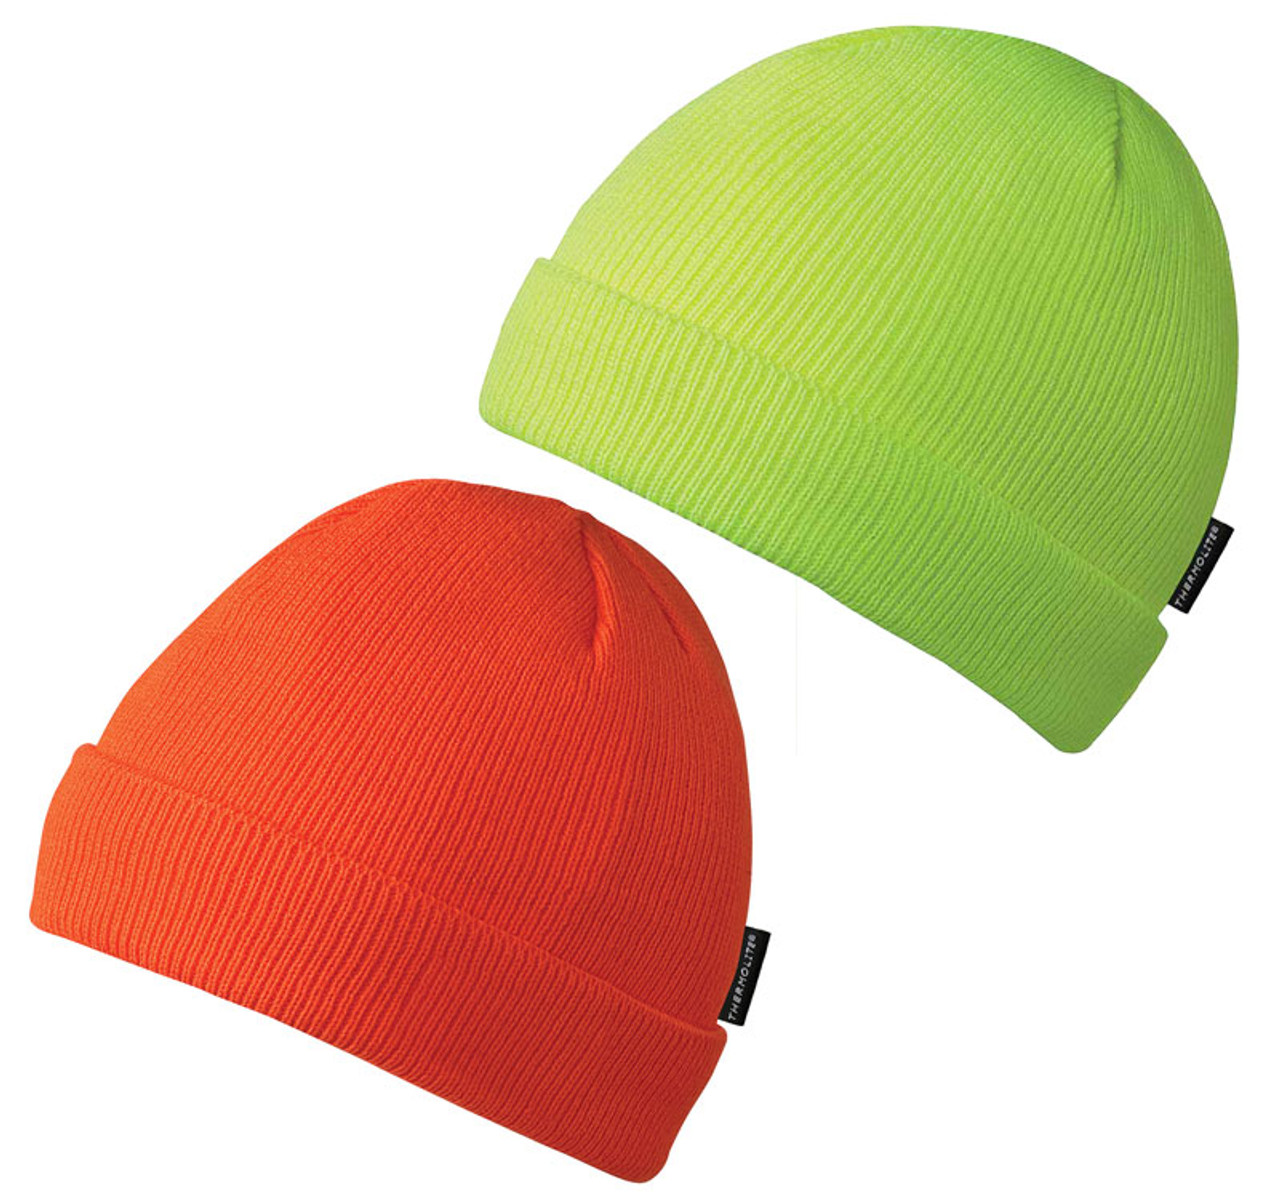 a6eec7f29bc51b Thermolite Lined Toque | Hi-Vis | Safety Supplies Canada